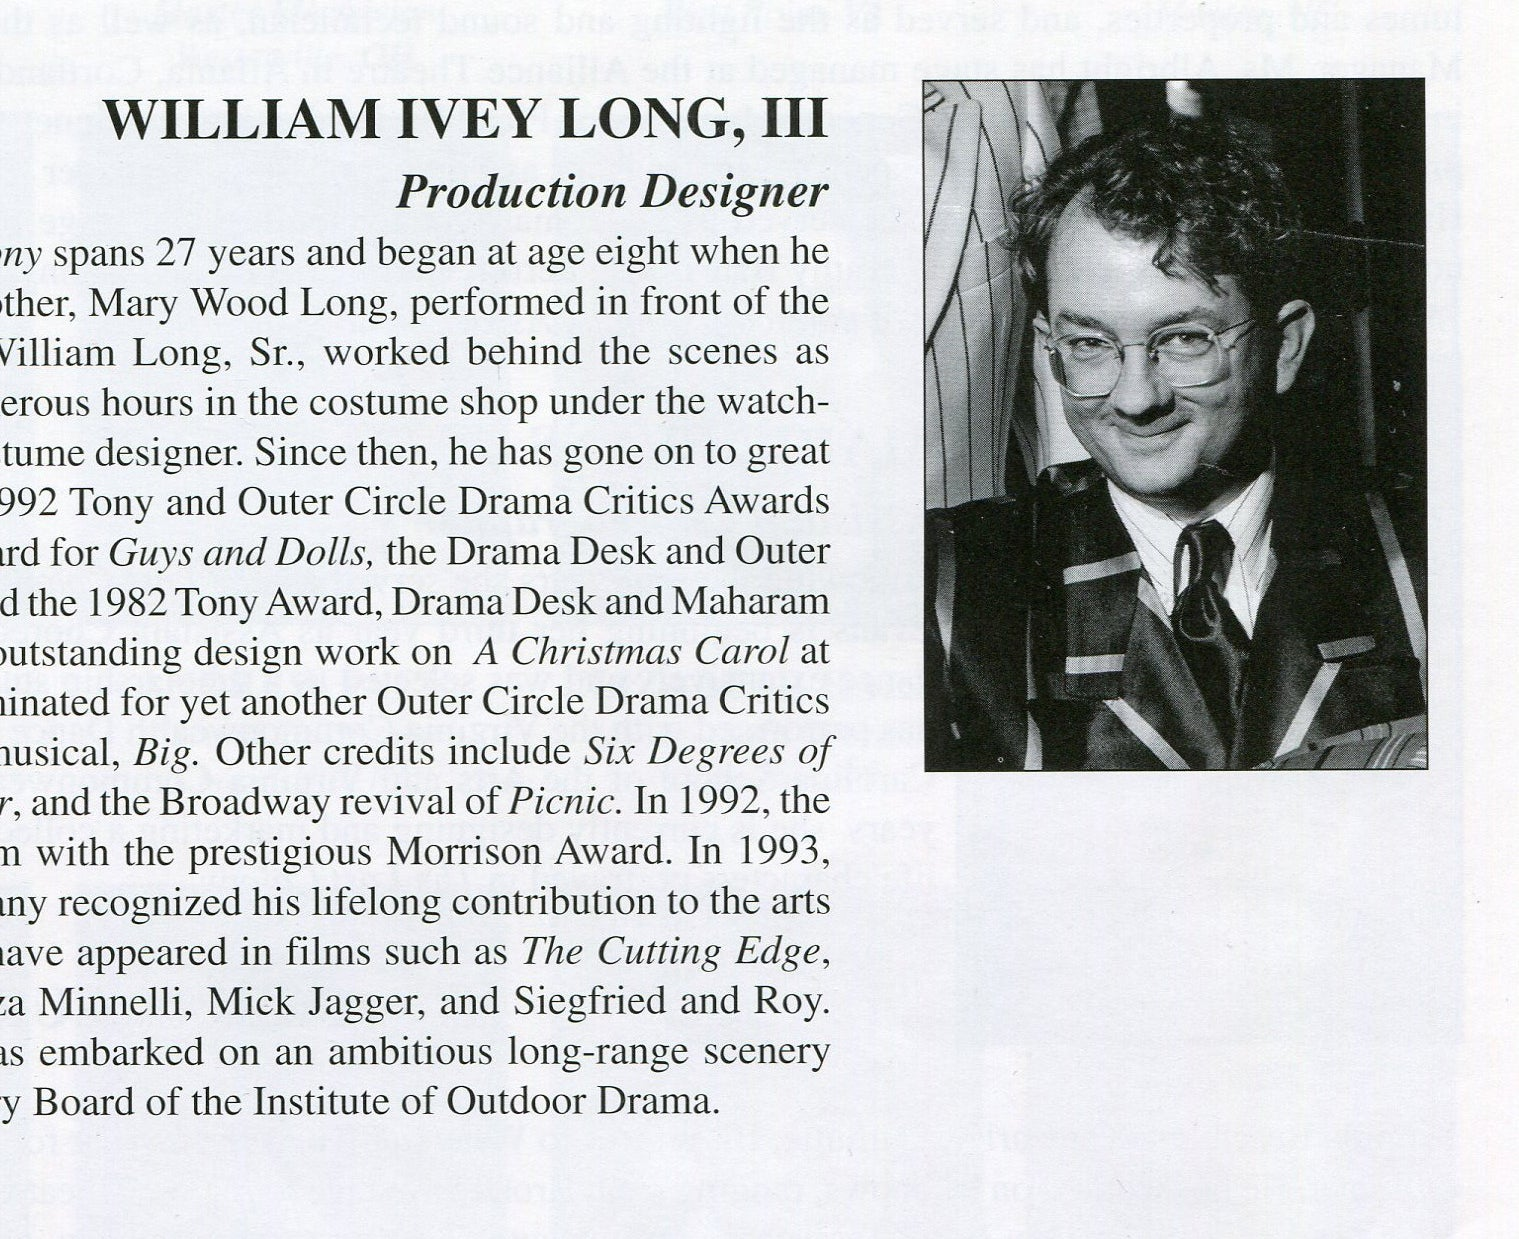 William Ivey Long's portrait and bio in The Lost Colony's 1996 program.